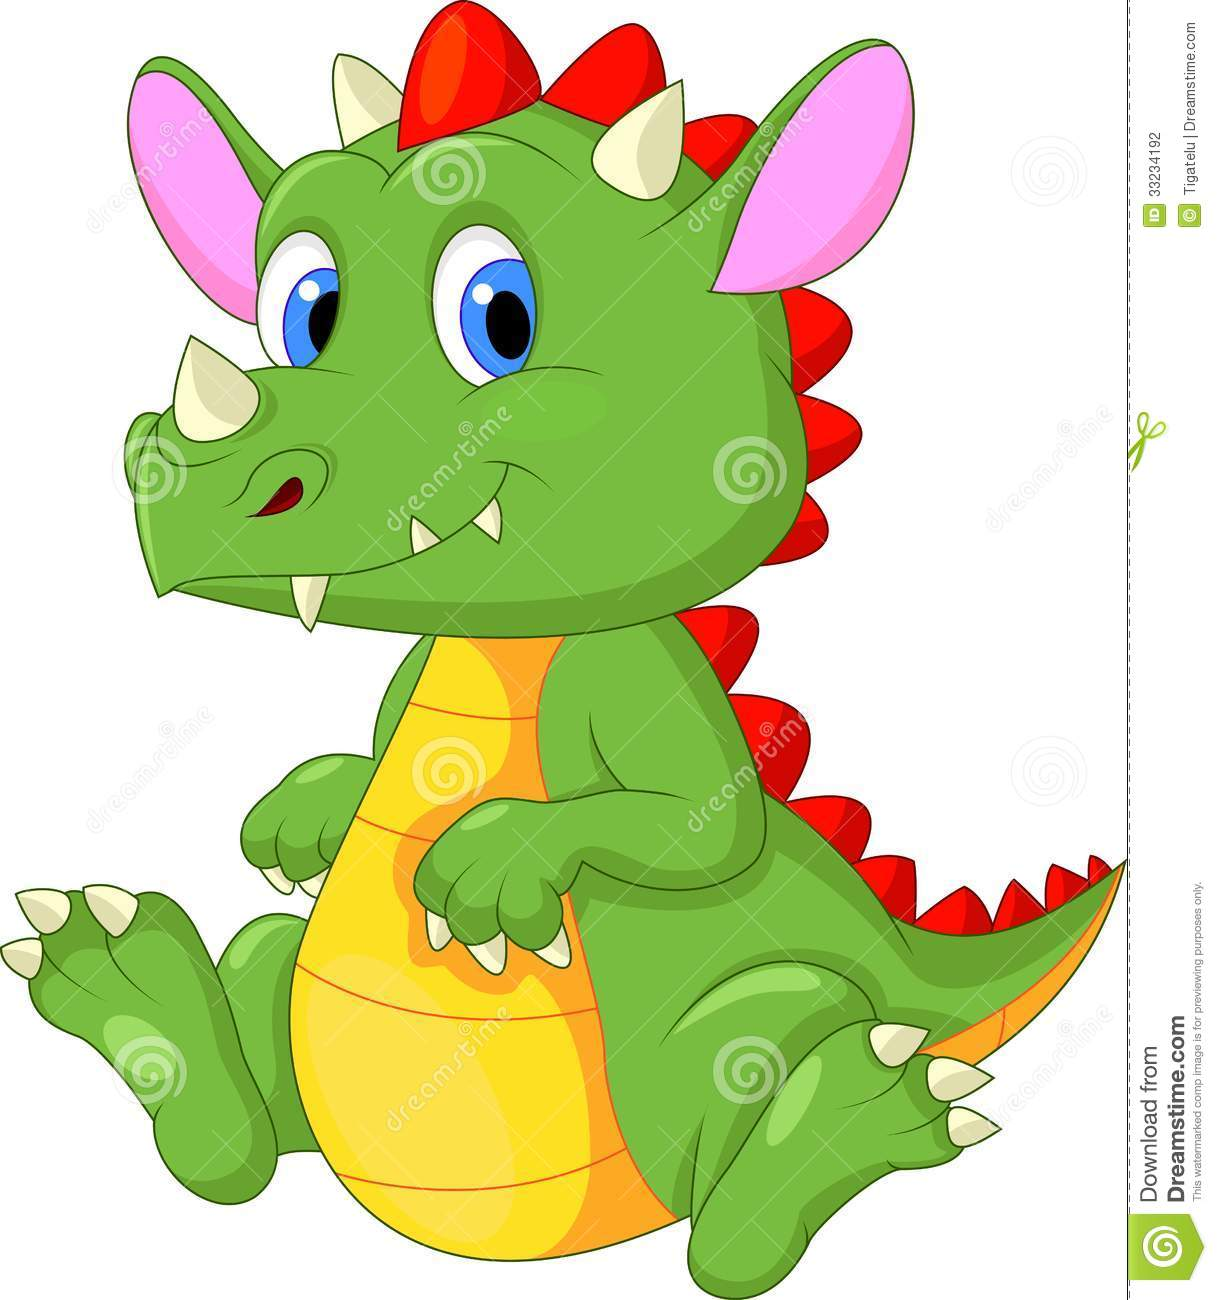 Cute Baby Dragon Cartoon Illustration 33234192 Megapixl